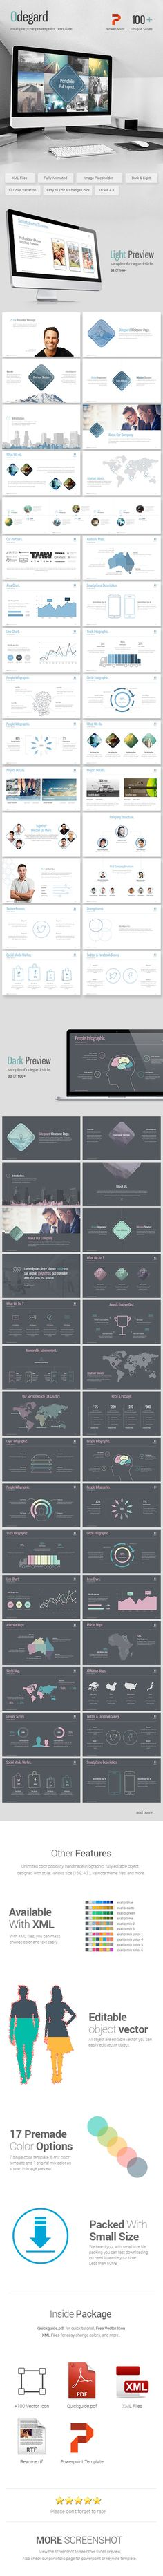 Odegard - Simple Powerpoint Presentation Template - Abstract PowerPoint Templates